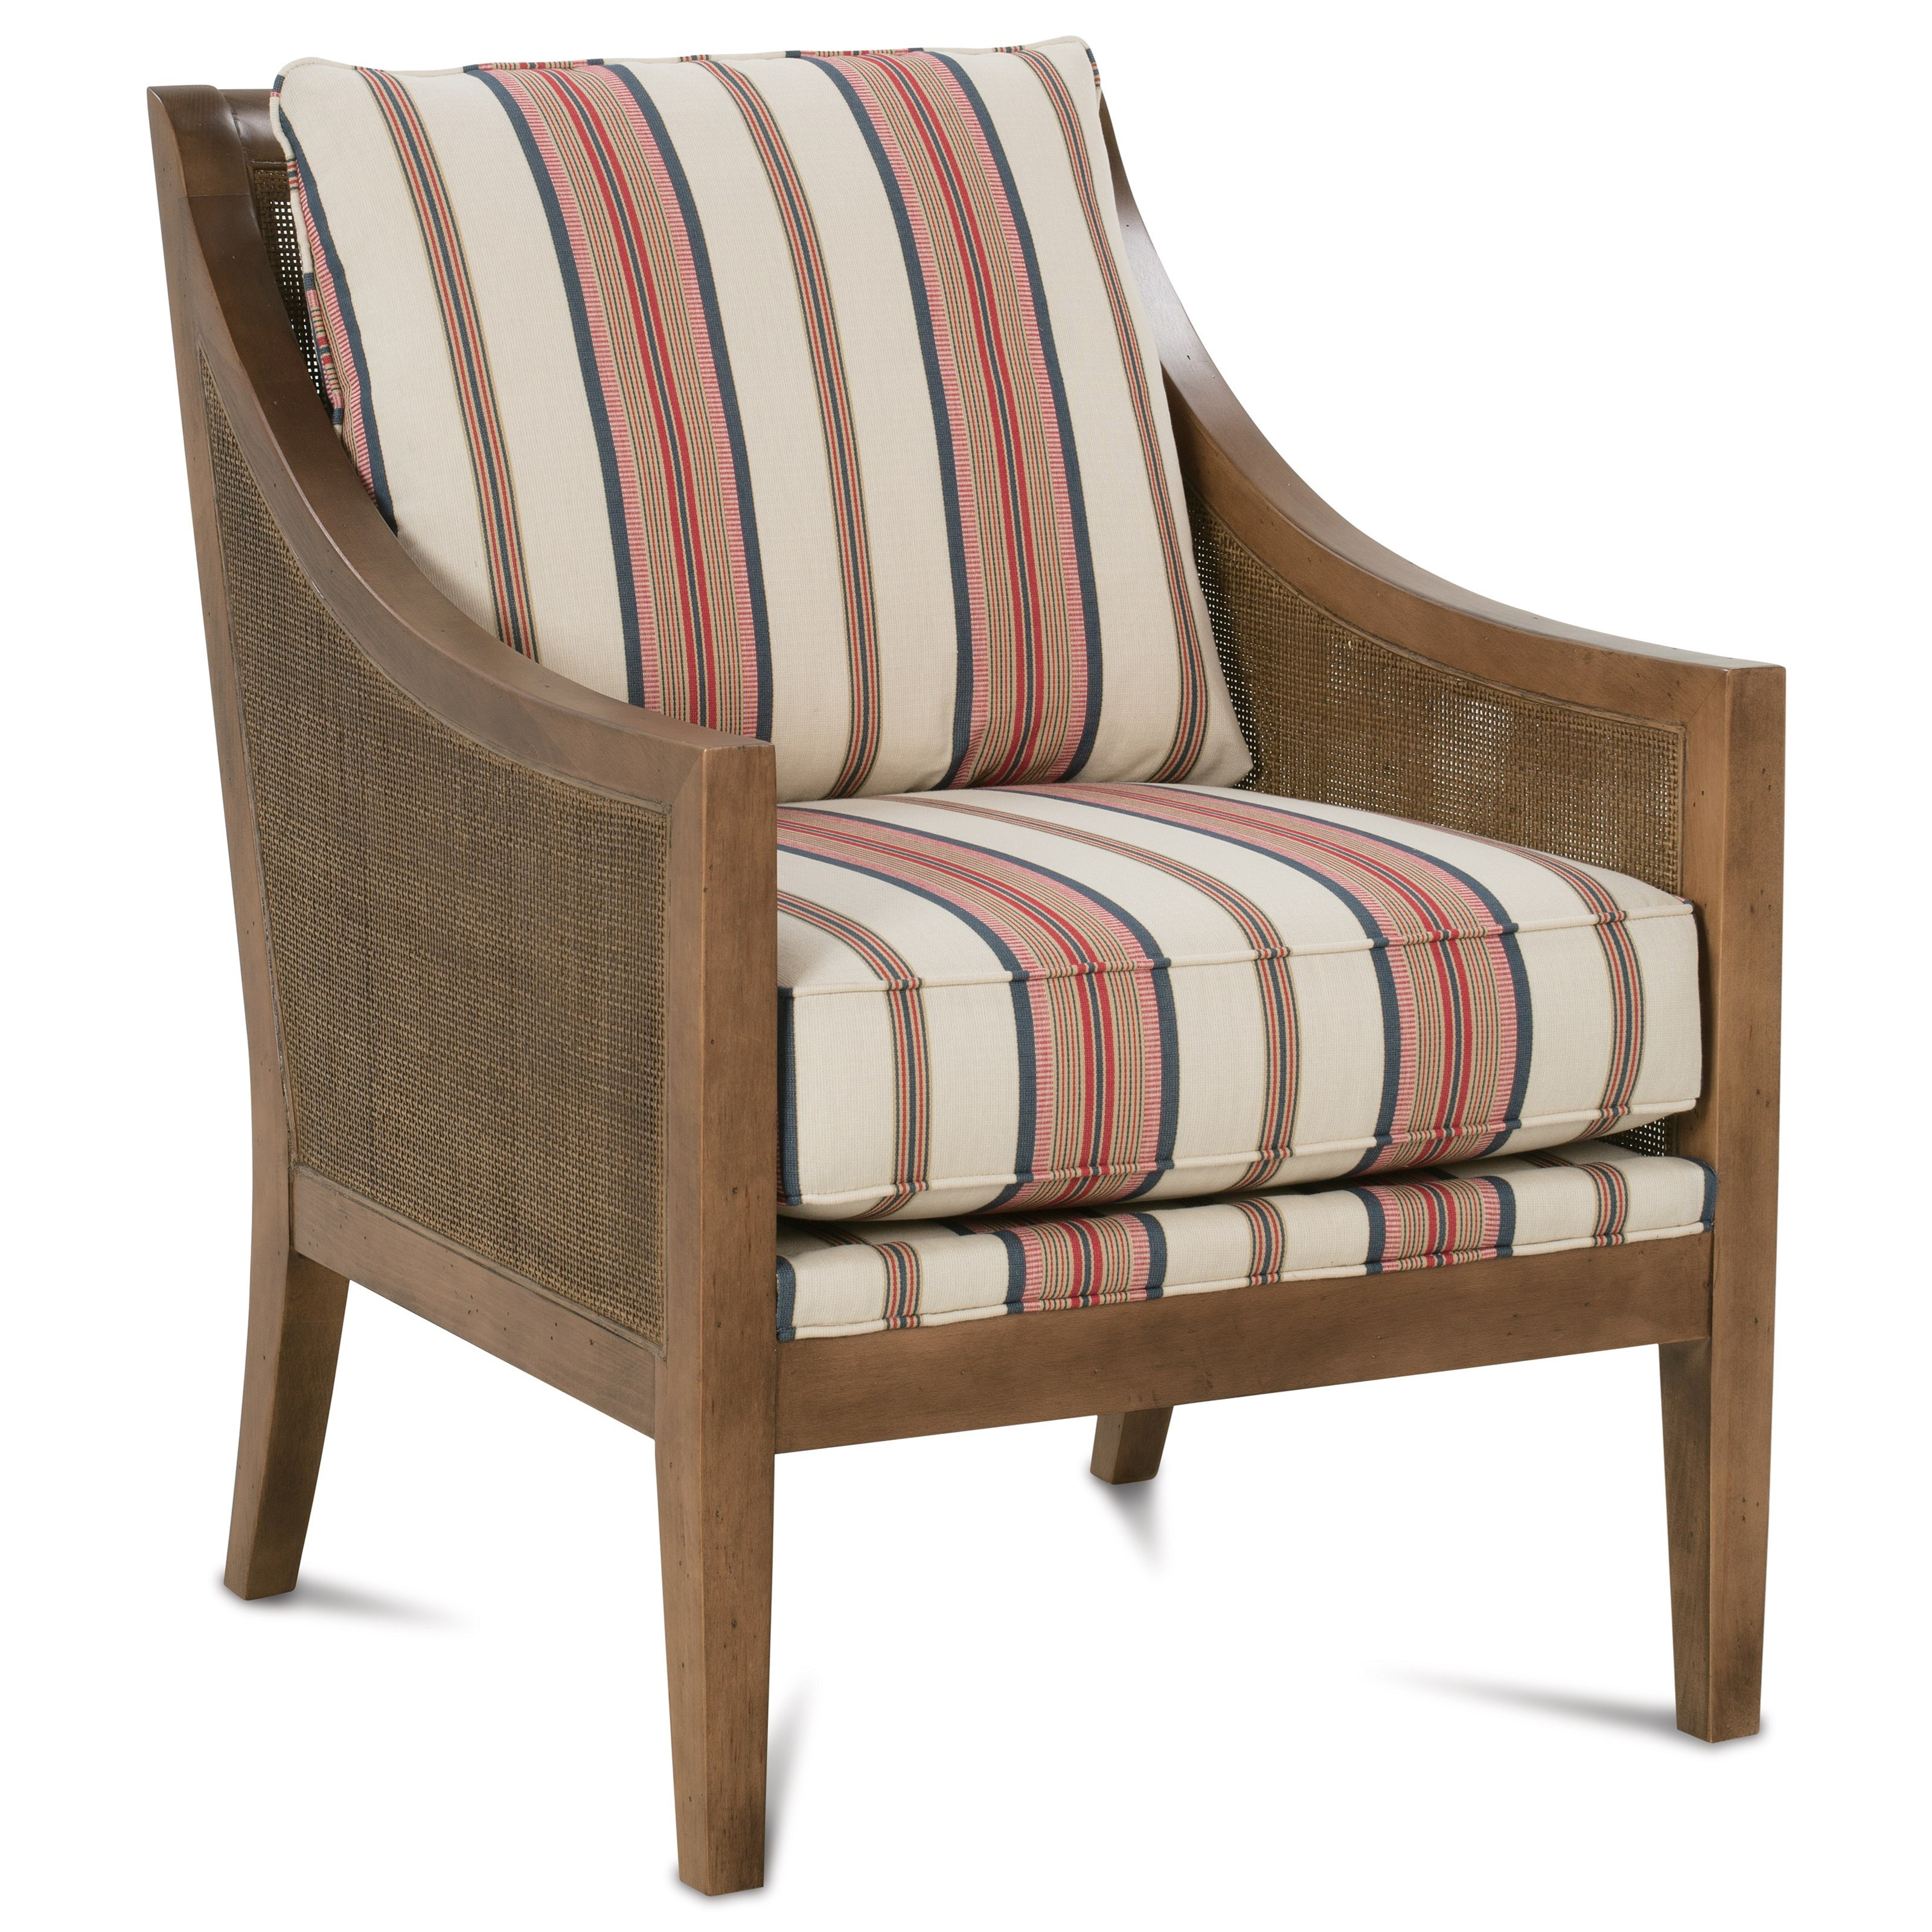 Rowe finley n960 006 casual accent chair with woven wood for Furniture 80s band